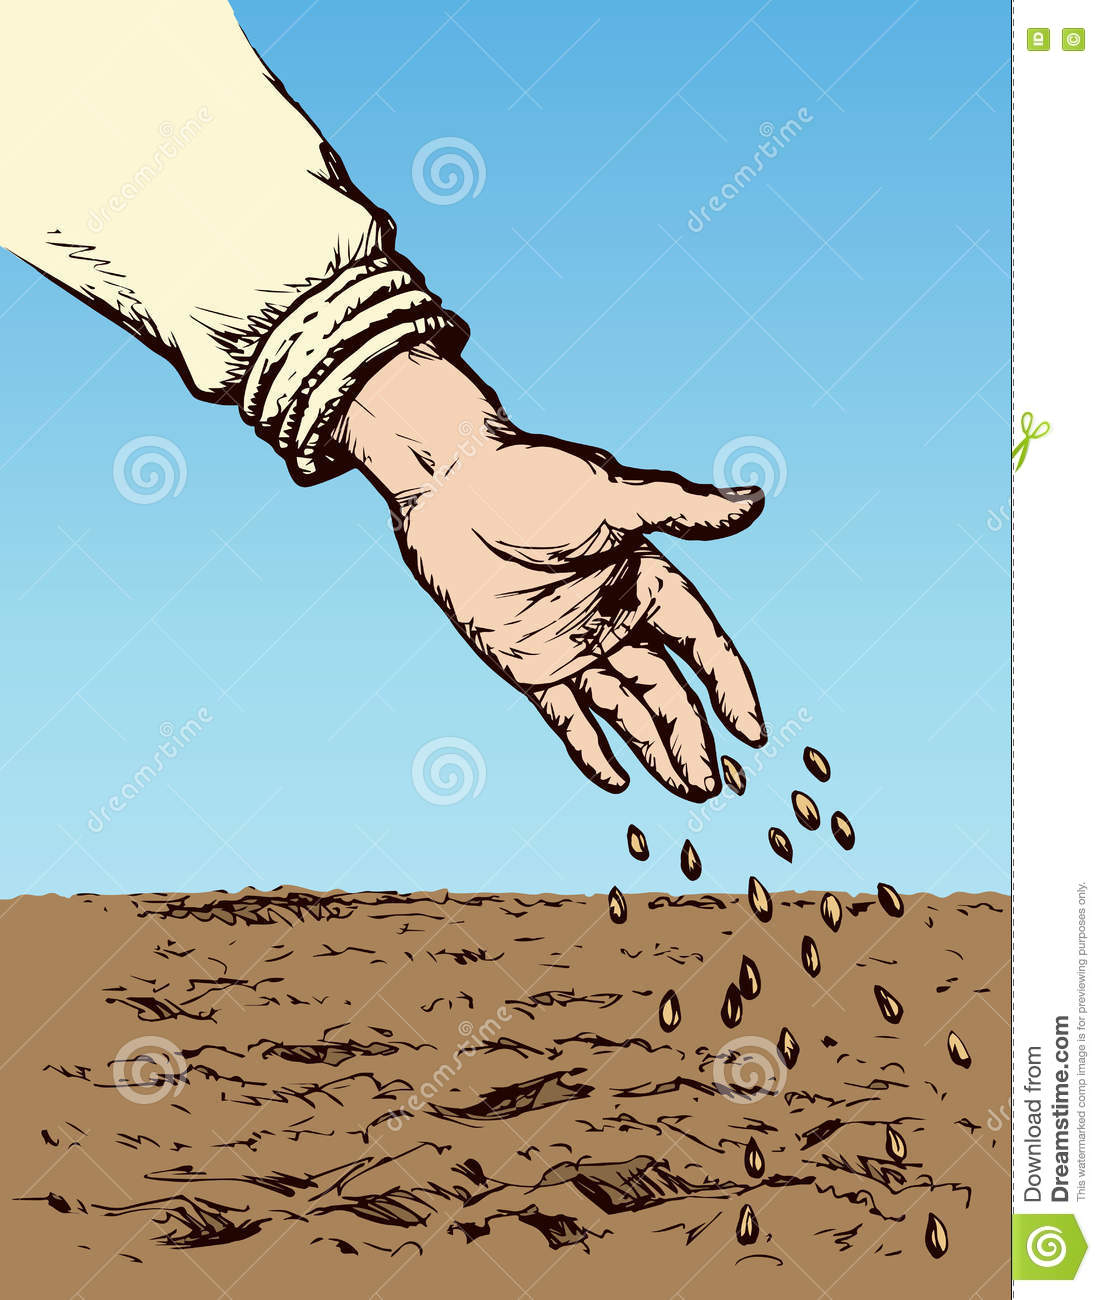 Hand Sowing Seed In Plowed Field Vector Drawing Stock